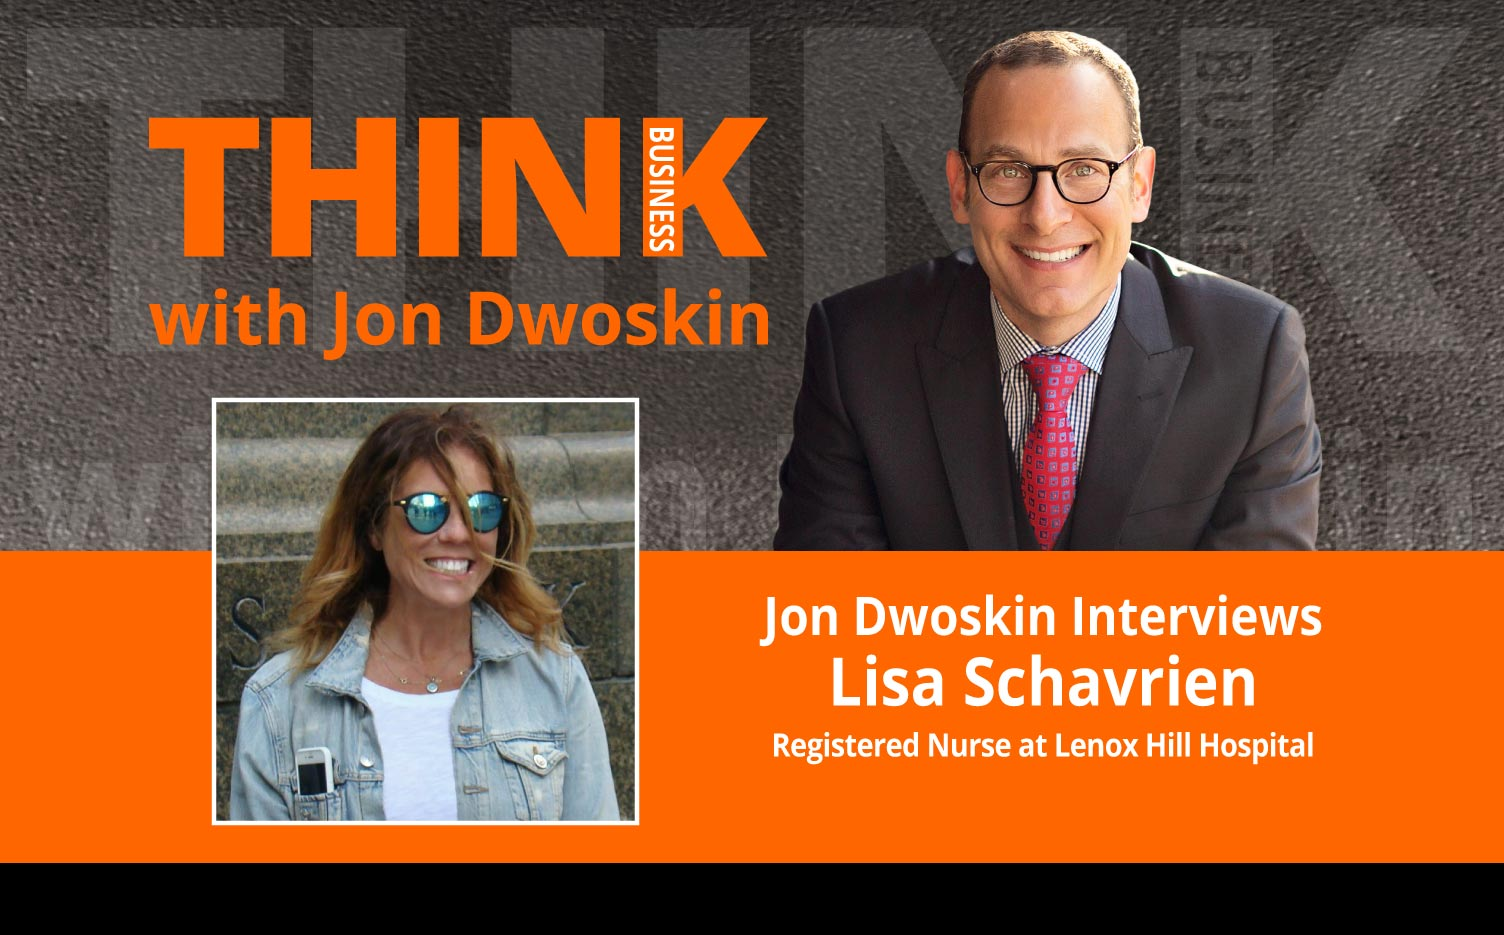 Jon Dwoskin Interviews Lisa Schavrien, Registered Nurse at Lenox